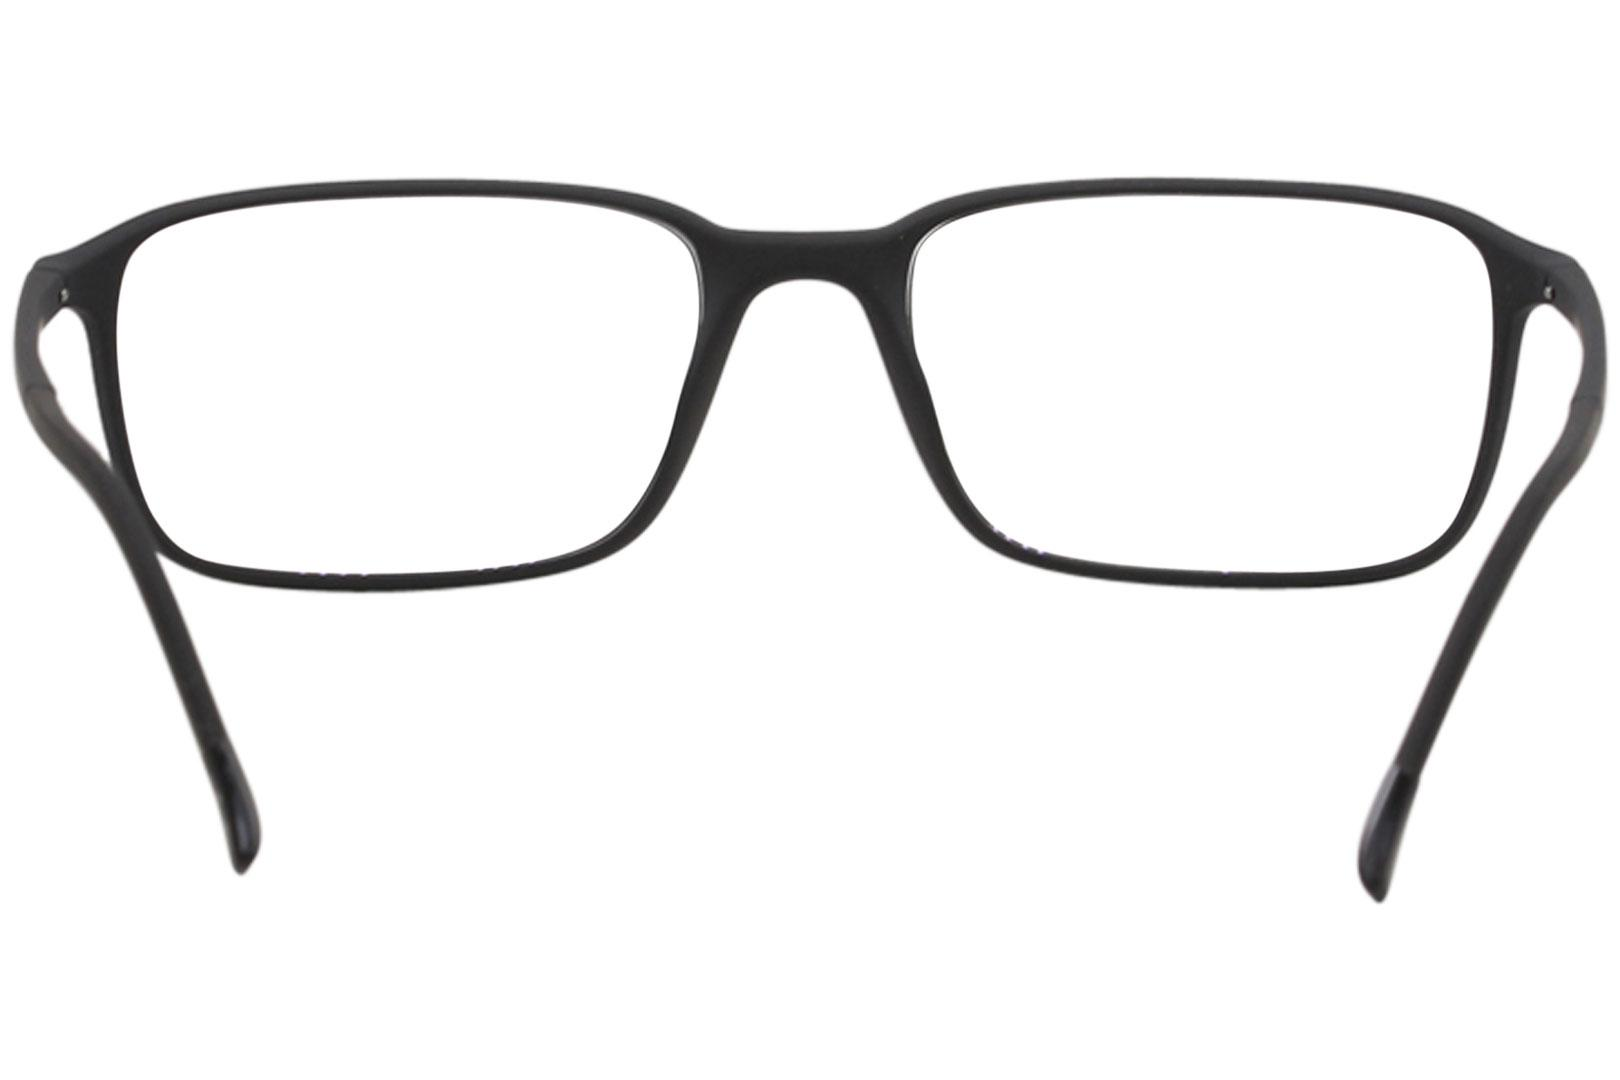 0f640e335114 Silhouette Men's Eyeglasses SPX Illusion 2912 Full Rim Optical Frame by  Silhouette